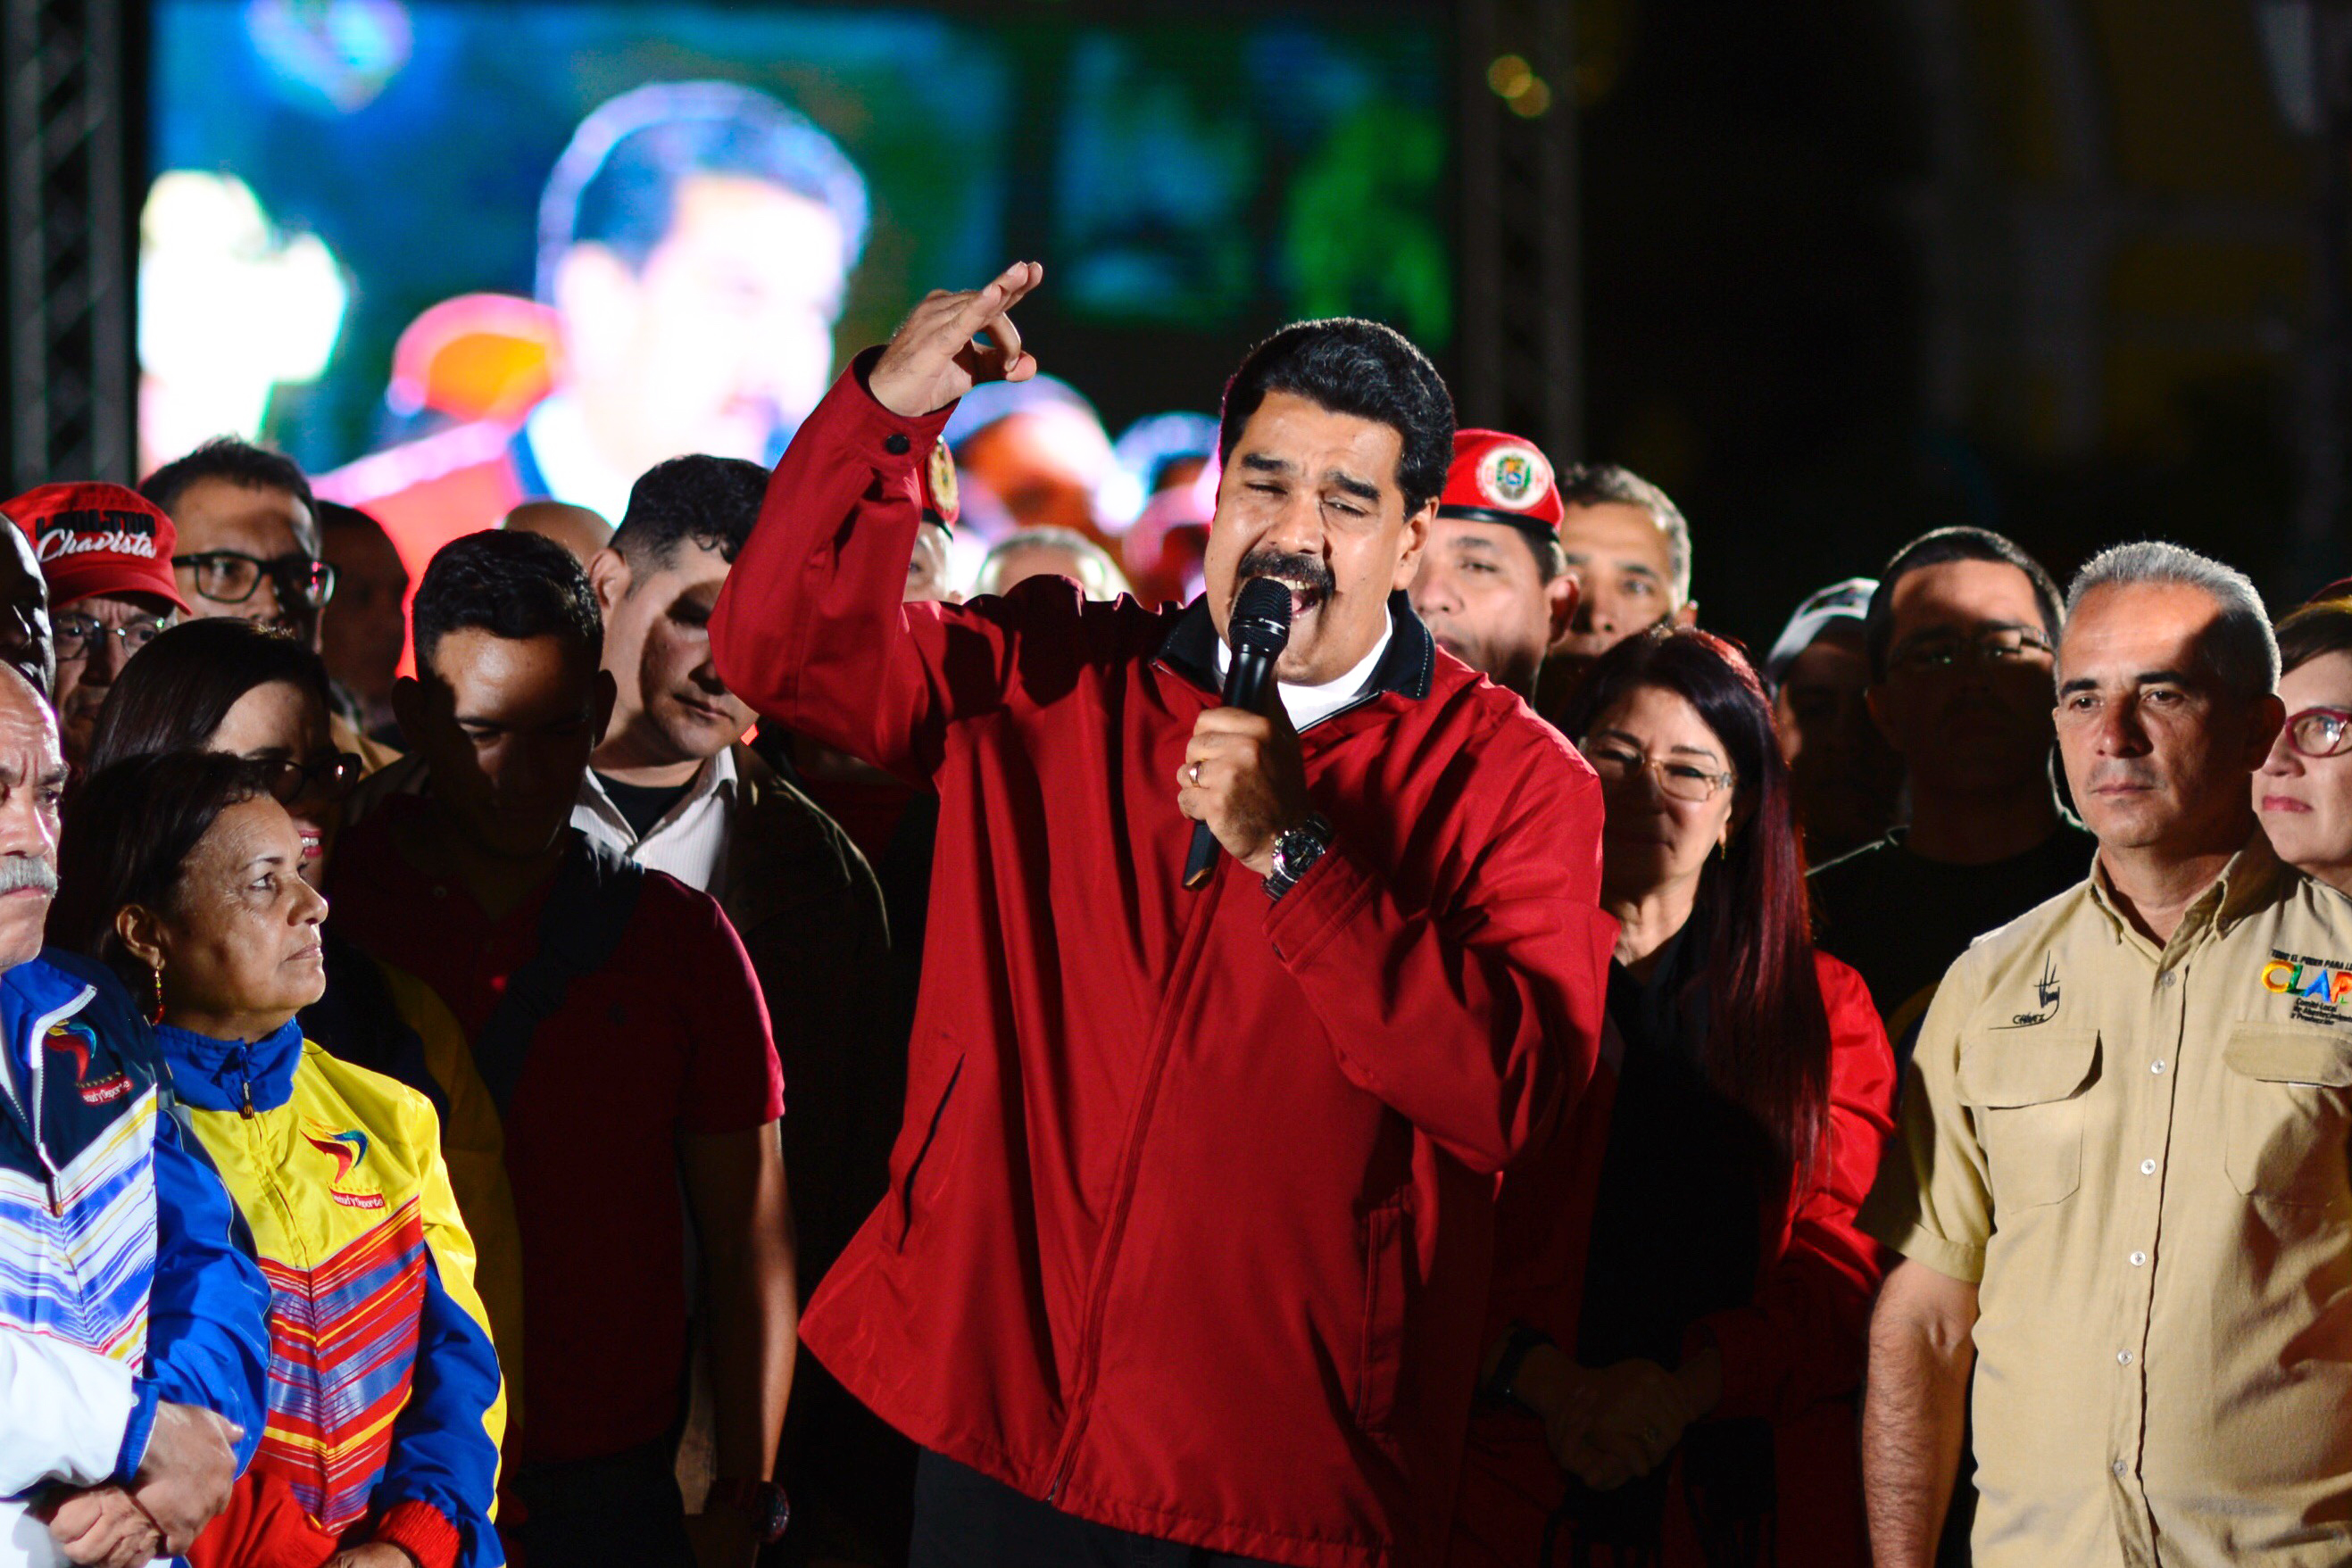 The Venezuelan President Nicolás Maduro (C) speaks next electoral candidates after the first results of the controversial election for a constituent assembly on the Bolivar square in Caracas, Venezuela, 31 July 2017.